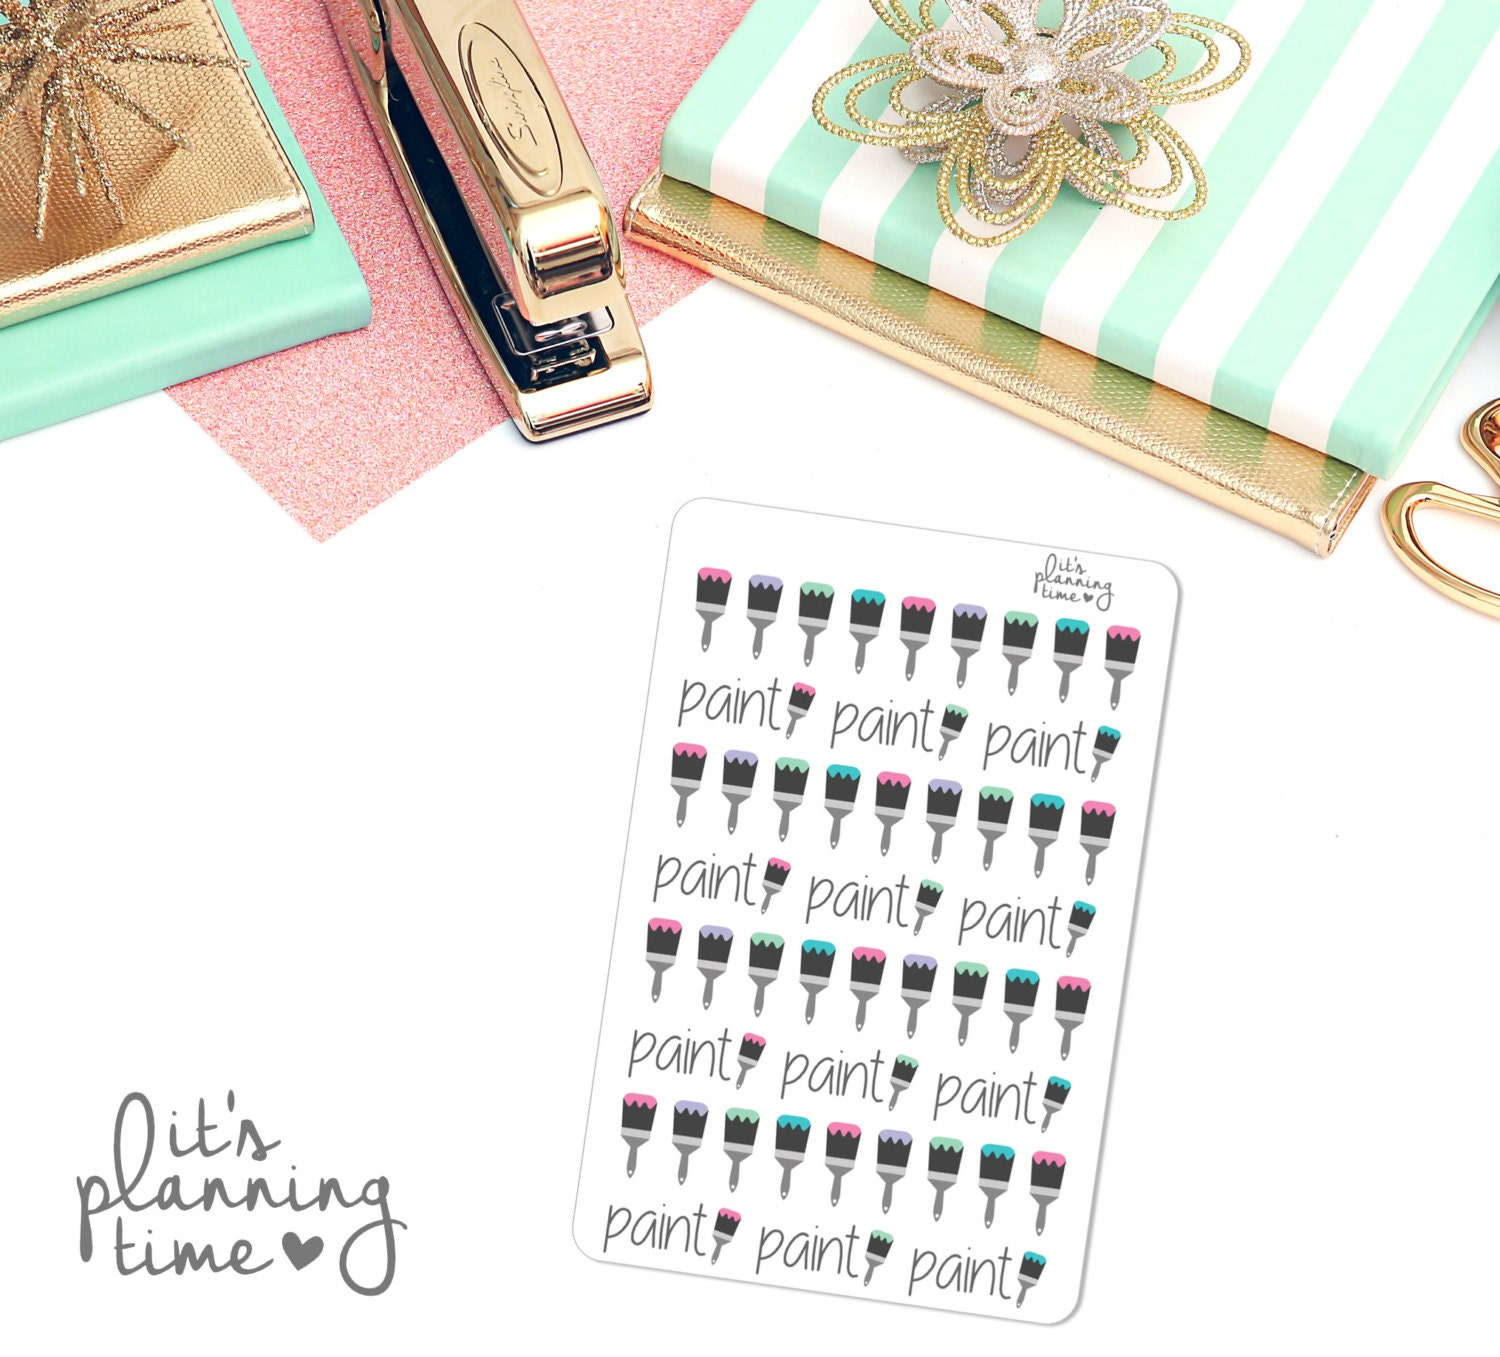 Paint brush planner stickers 48 count from for Paint planner